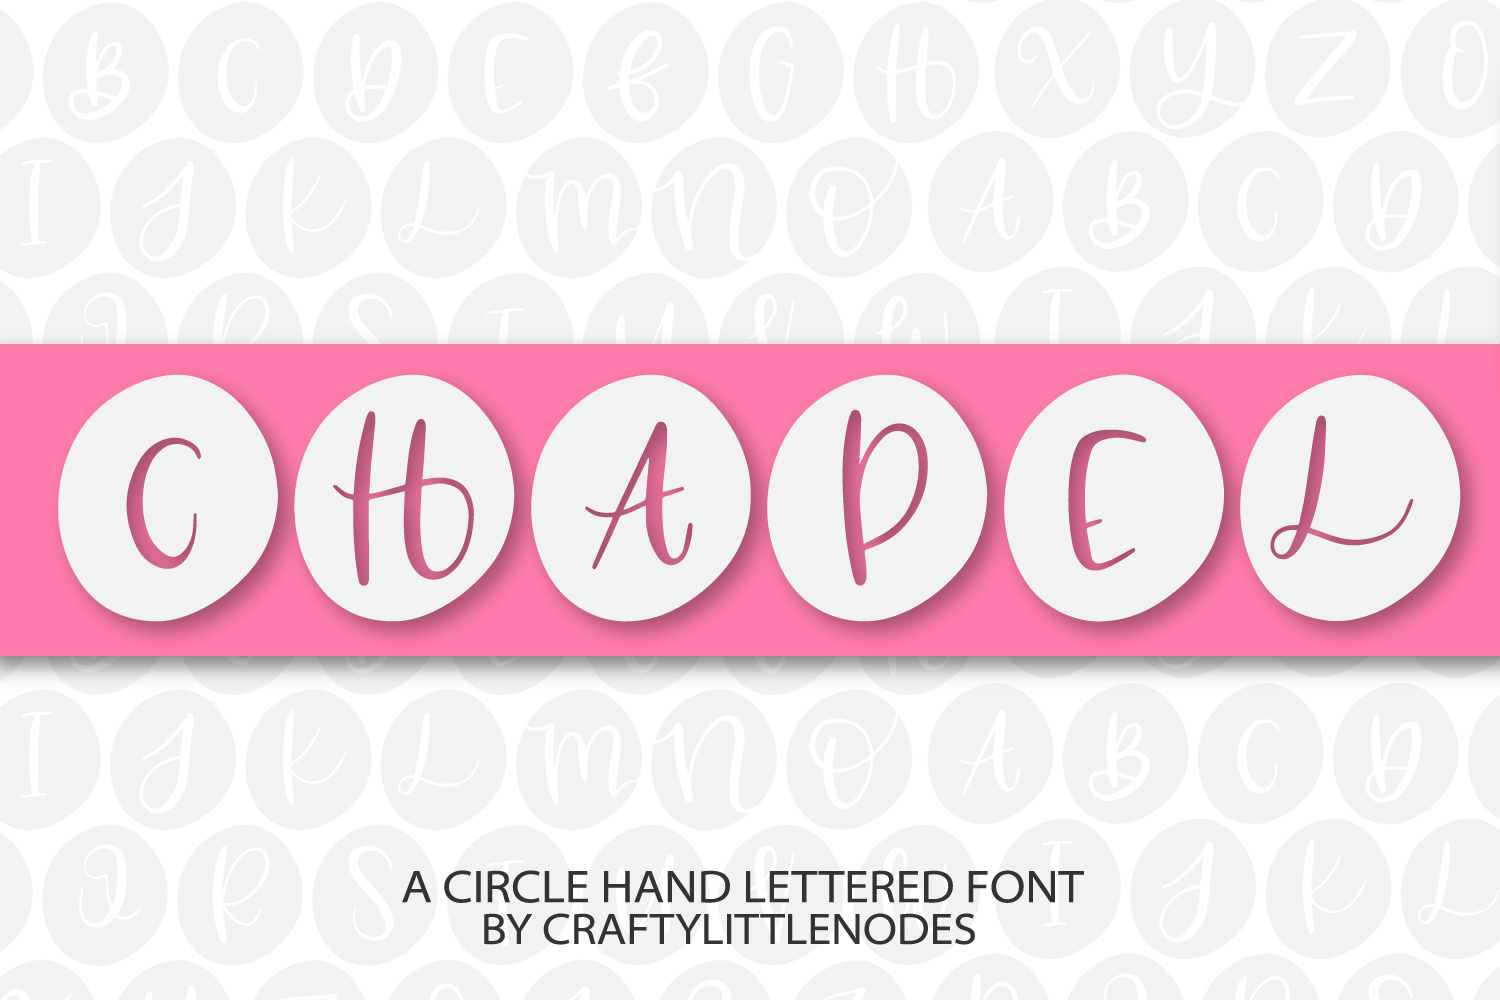 Chapel - A Circle Hand Lettered Font example image 1